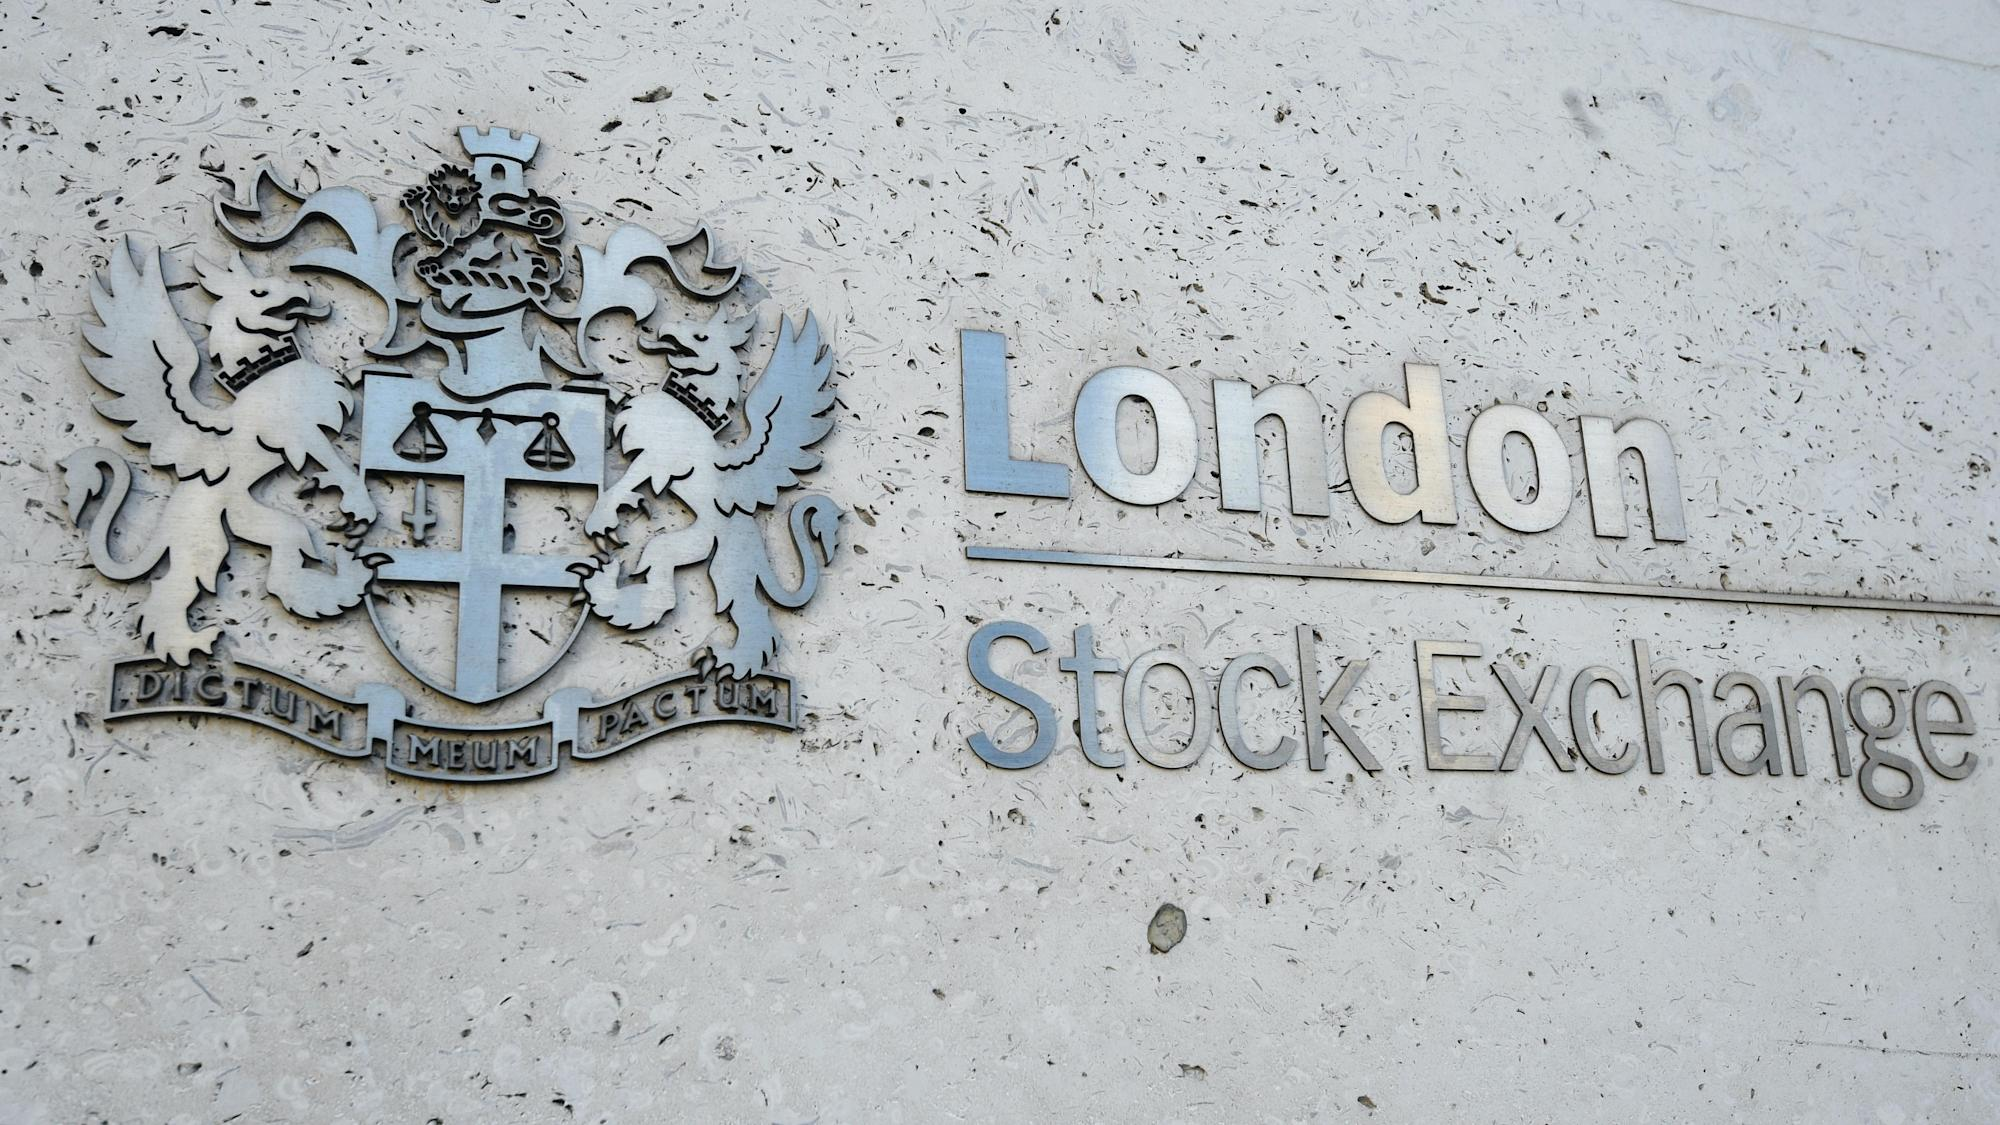 London trading volatile with US election on knife-edge